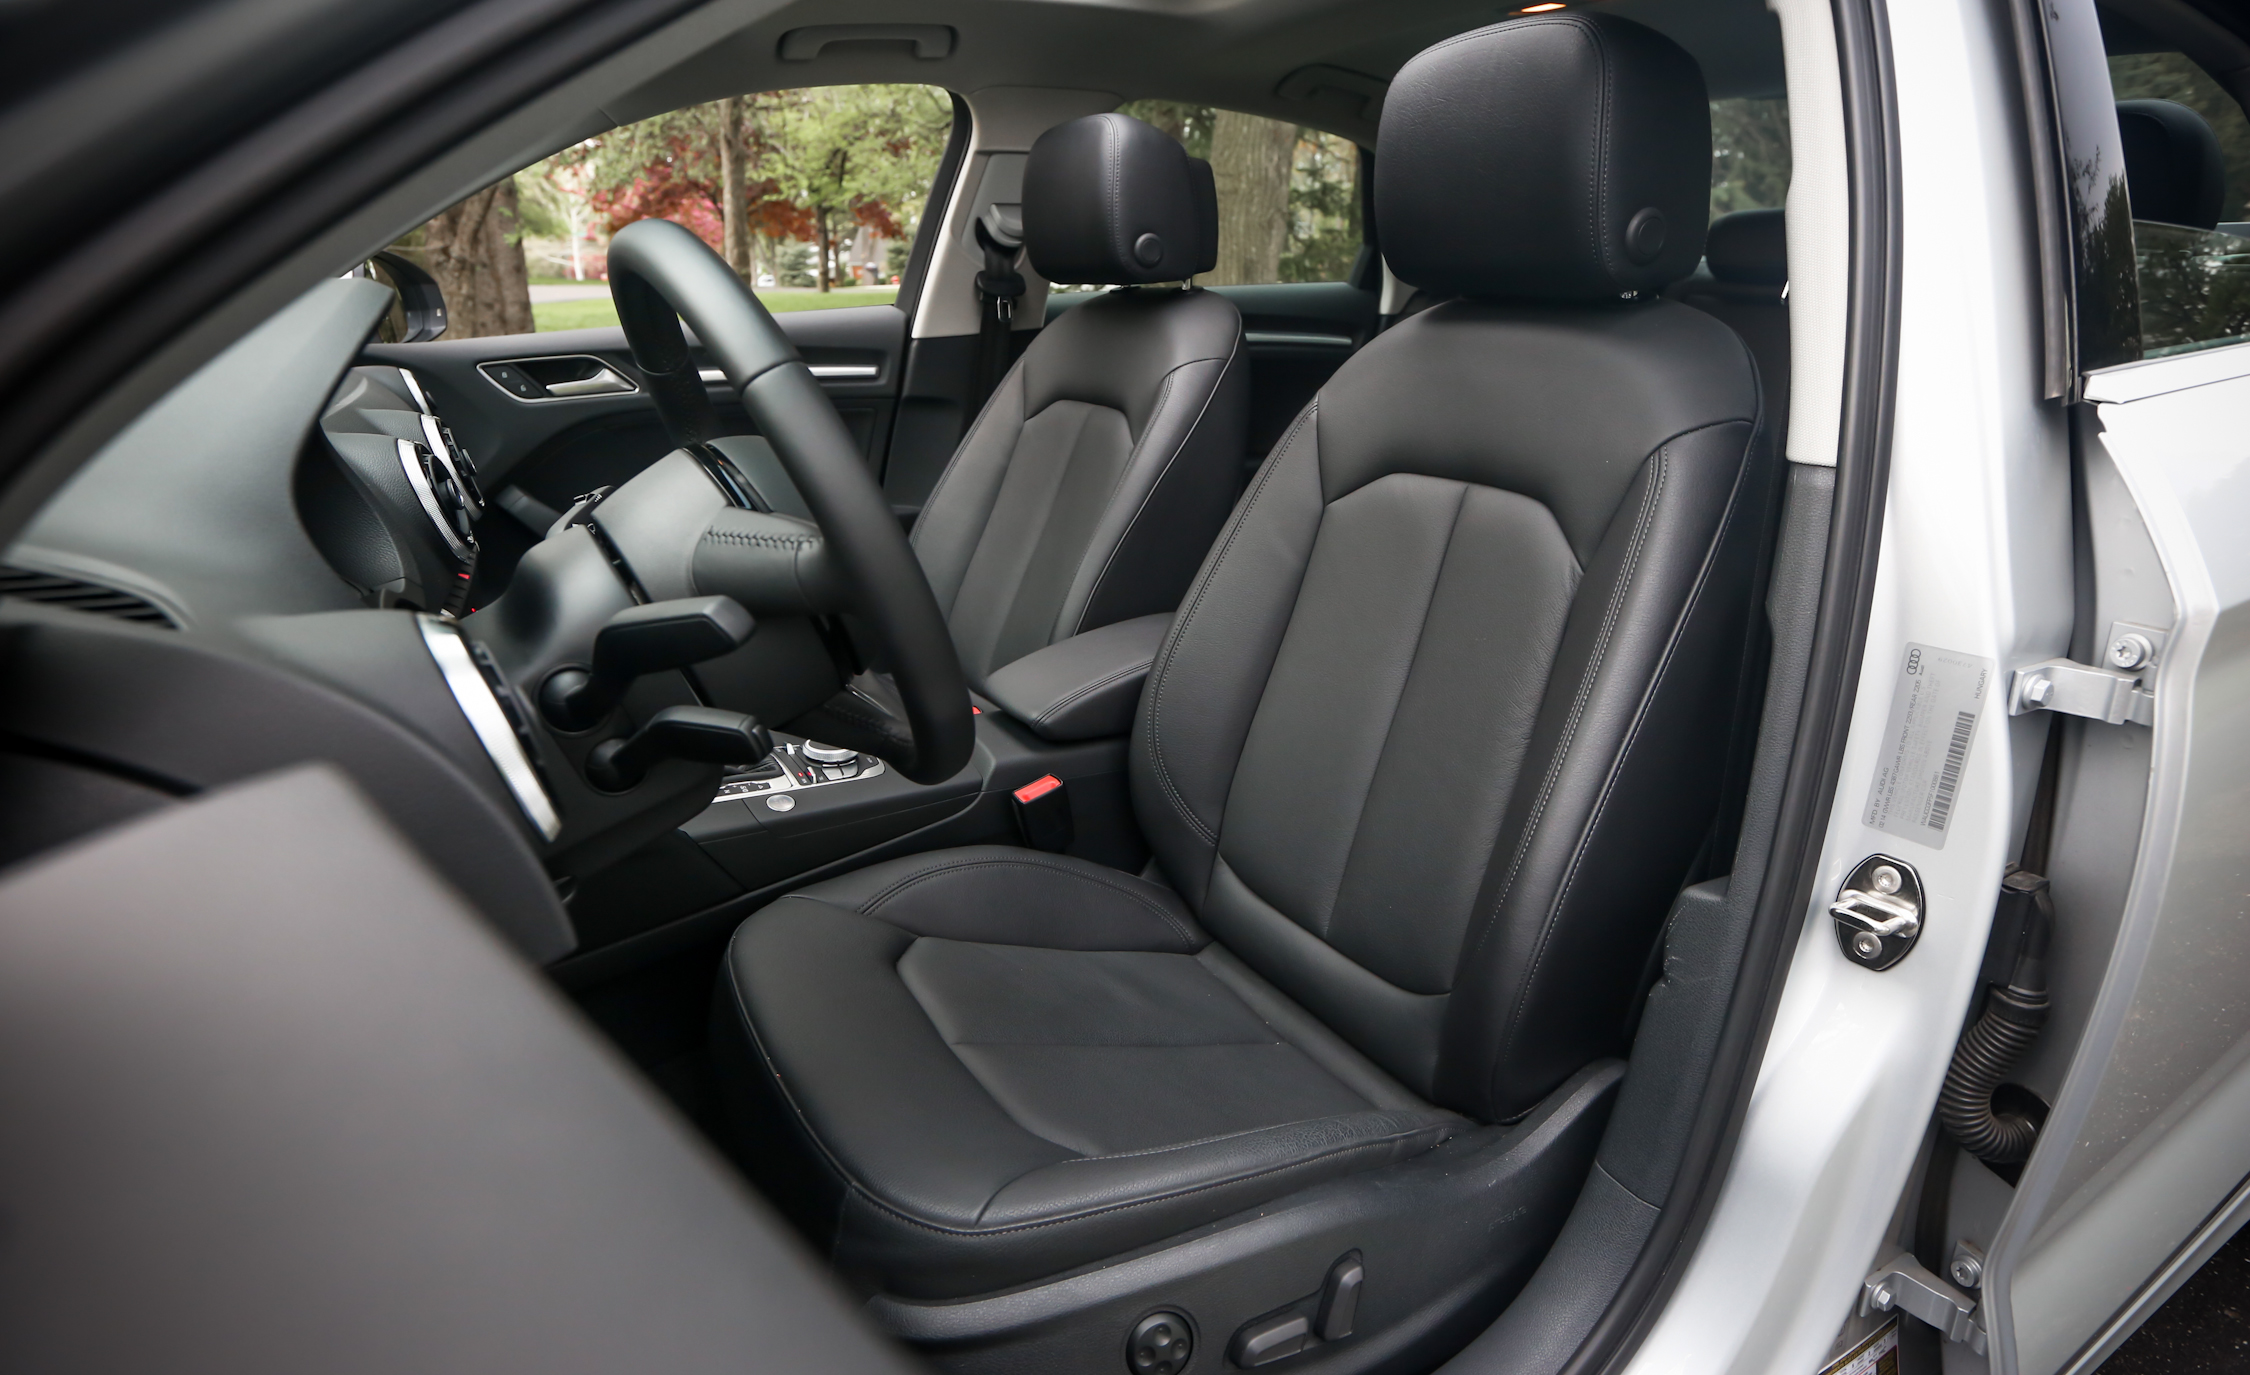 2015 Audi A3 1.8T Interior Seats Front (Photo 44 of 50)